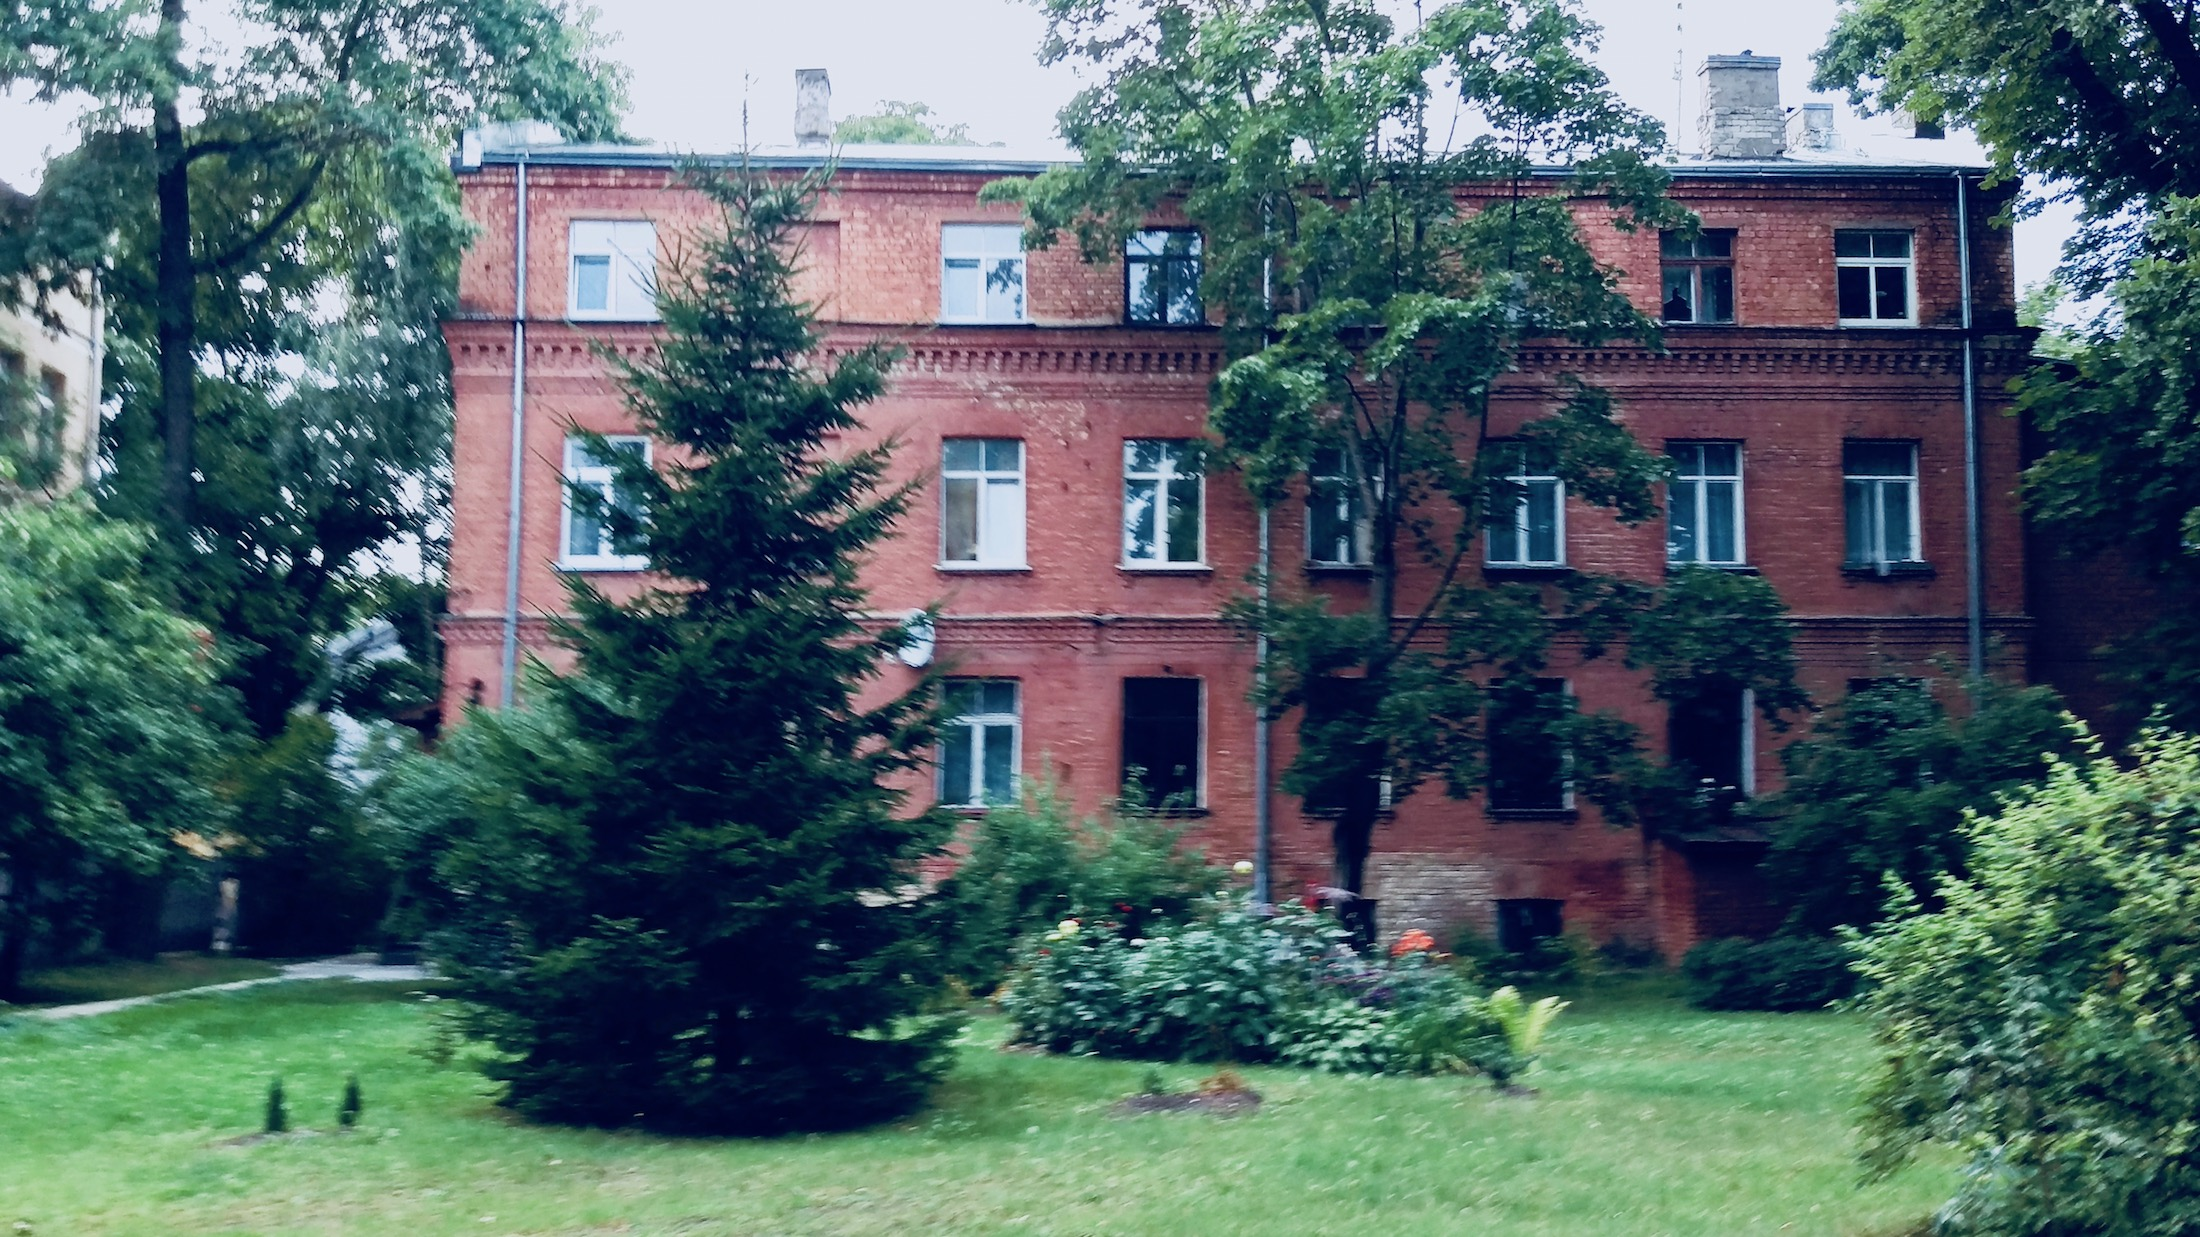 Red brick building in Āgenskalns